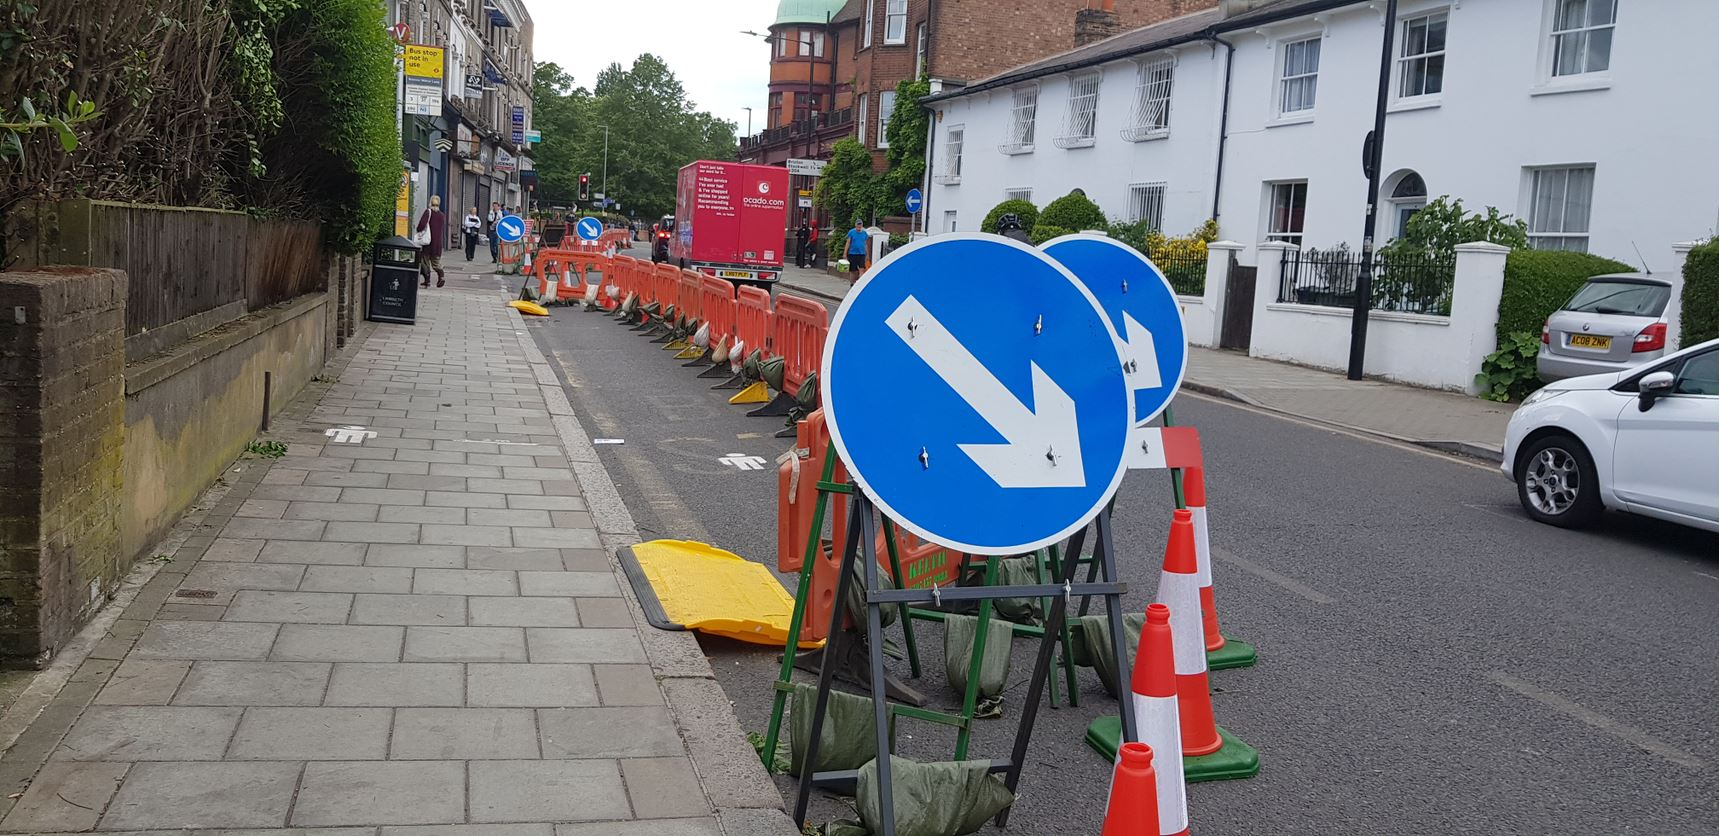 An image of a pavement that has been extended into a road with cones separately the two areas